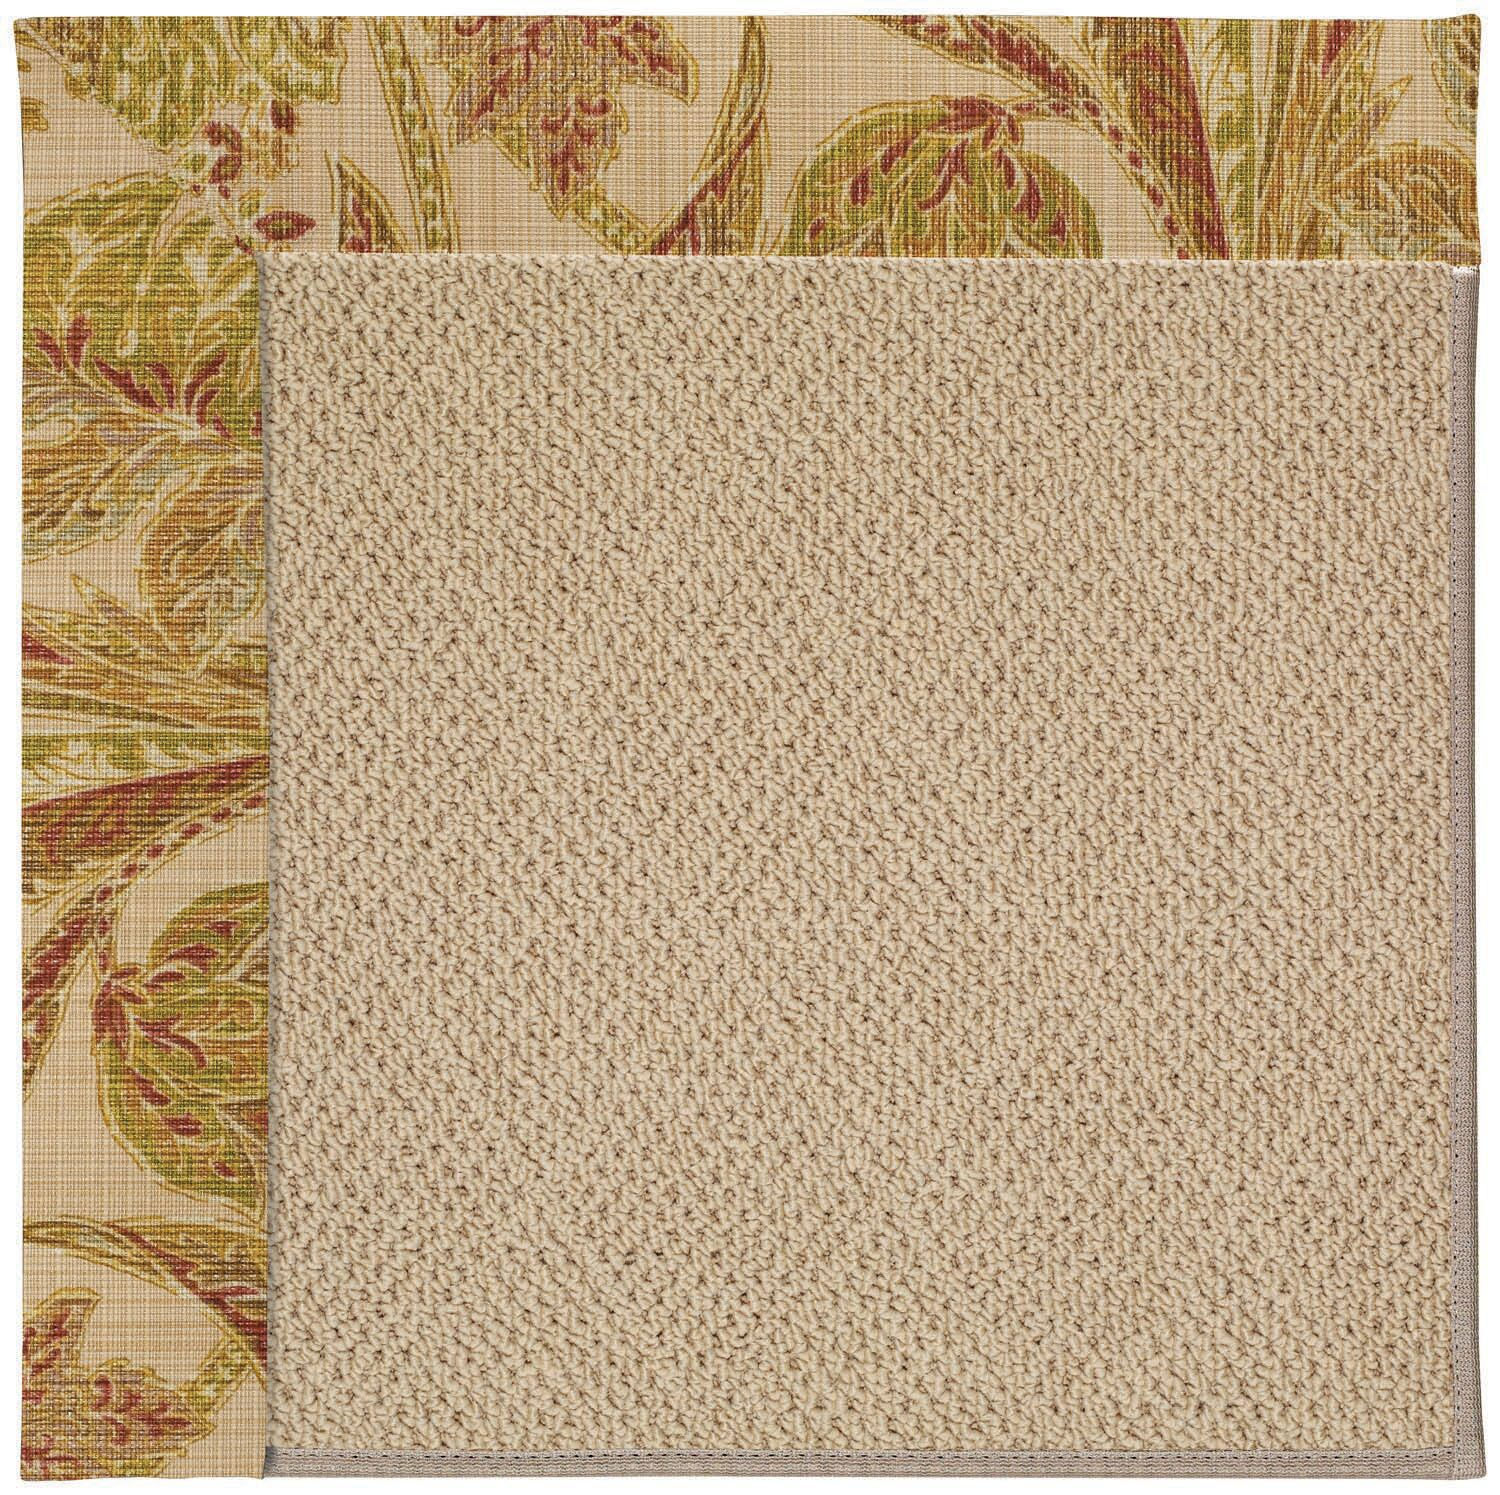 Lisle Machine Tufted Tan Indoor/Outdoor Area Rug Rug Size: Rectangle 8' x 10'